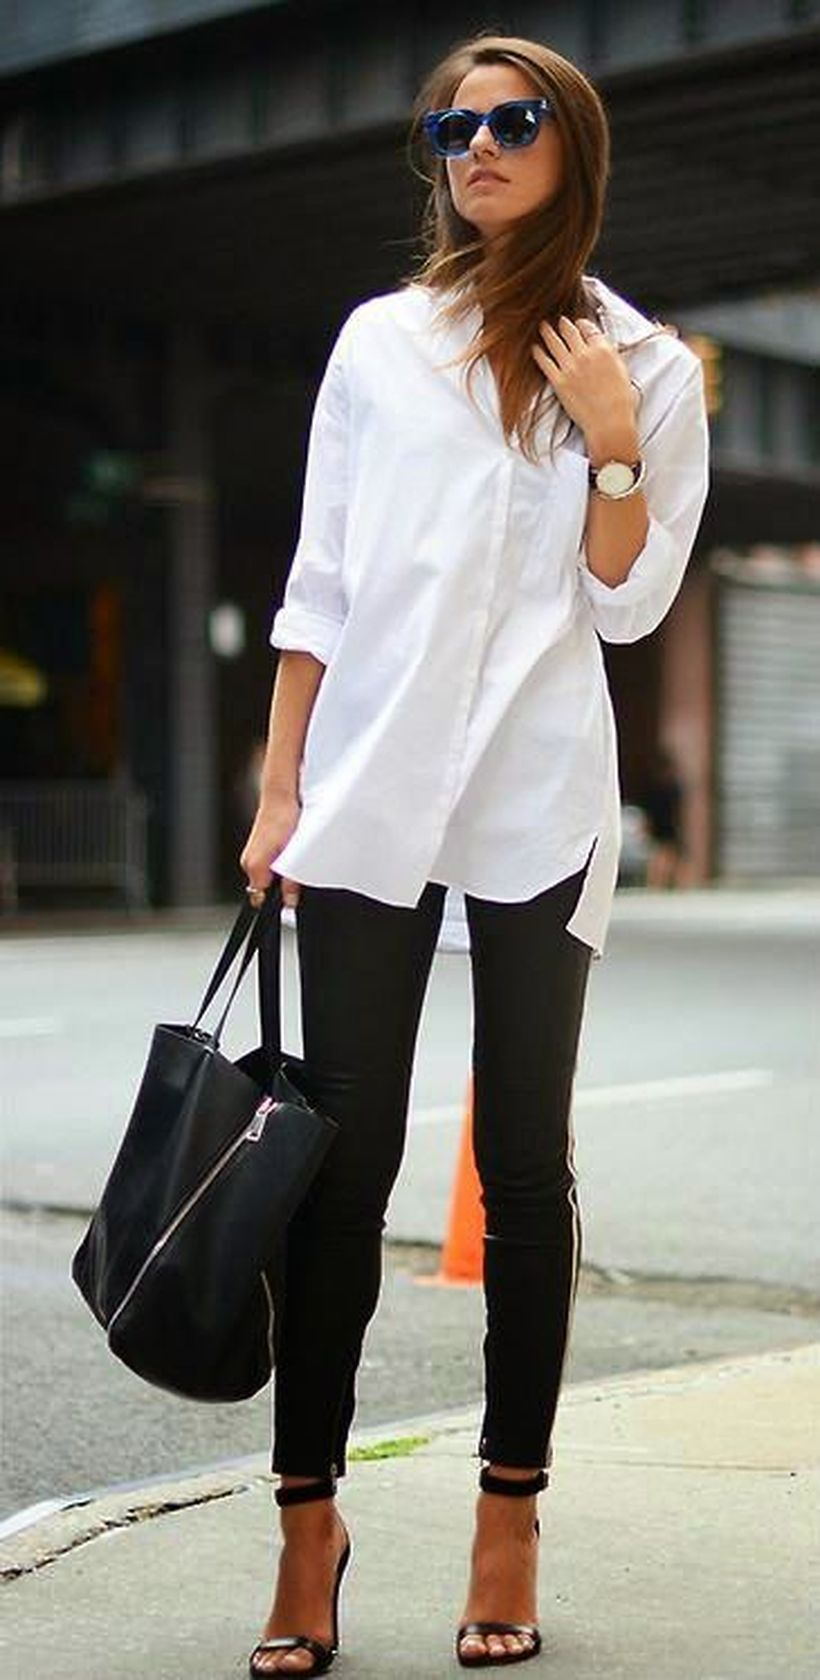 Awesome oversized white shirt outfit style ideas 26